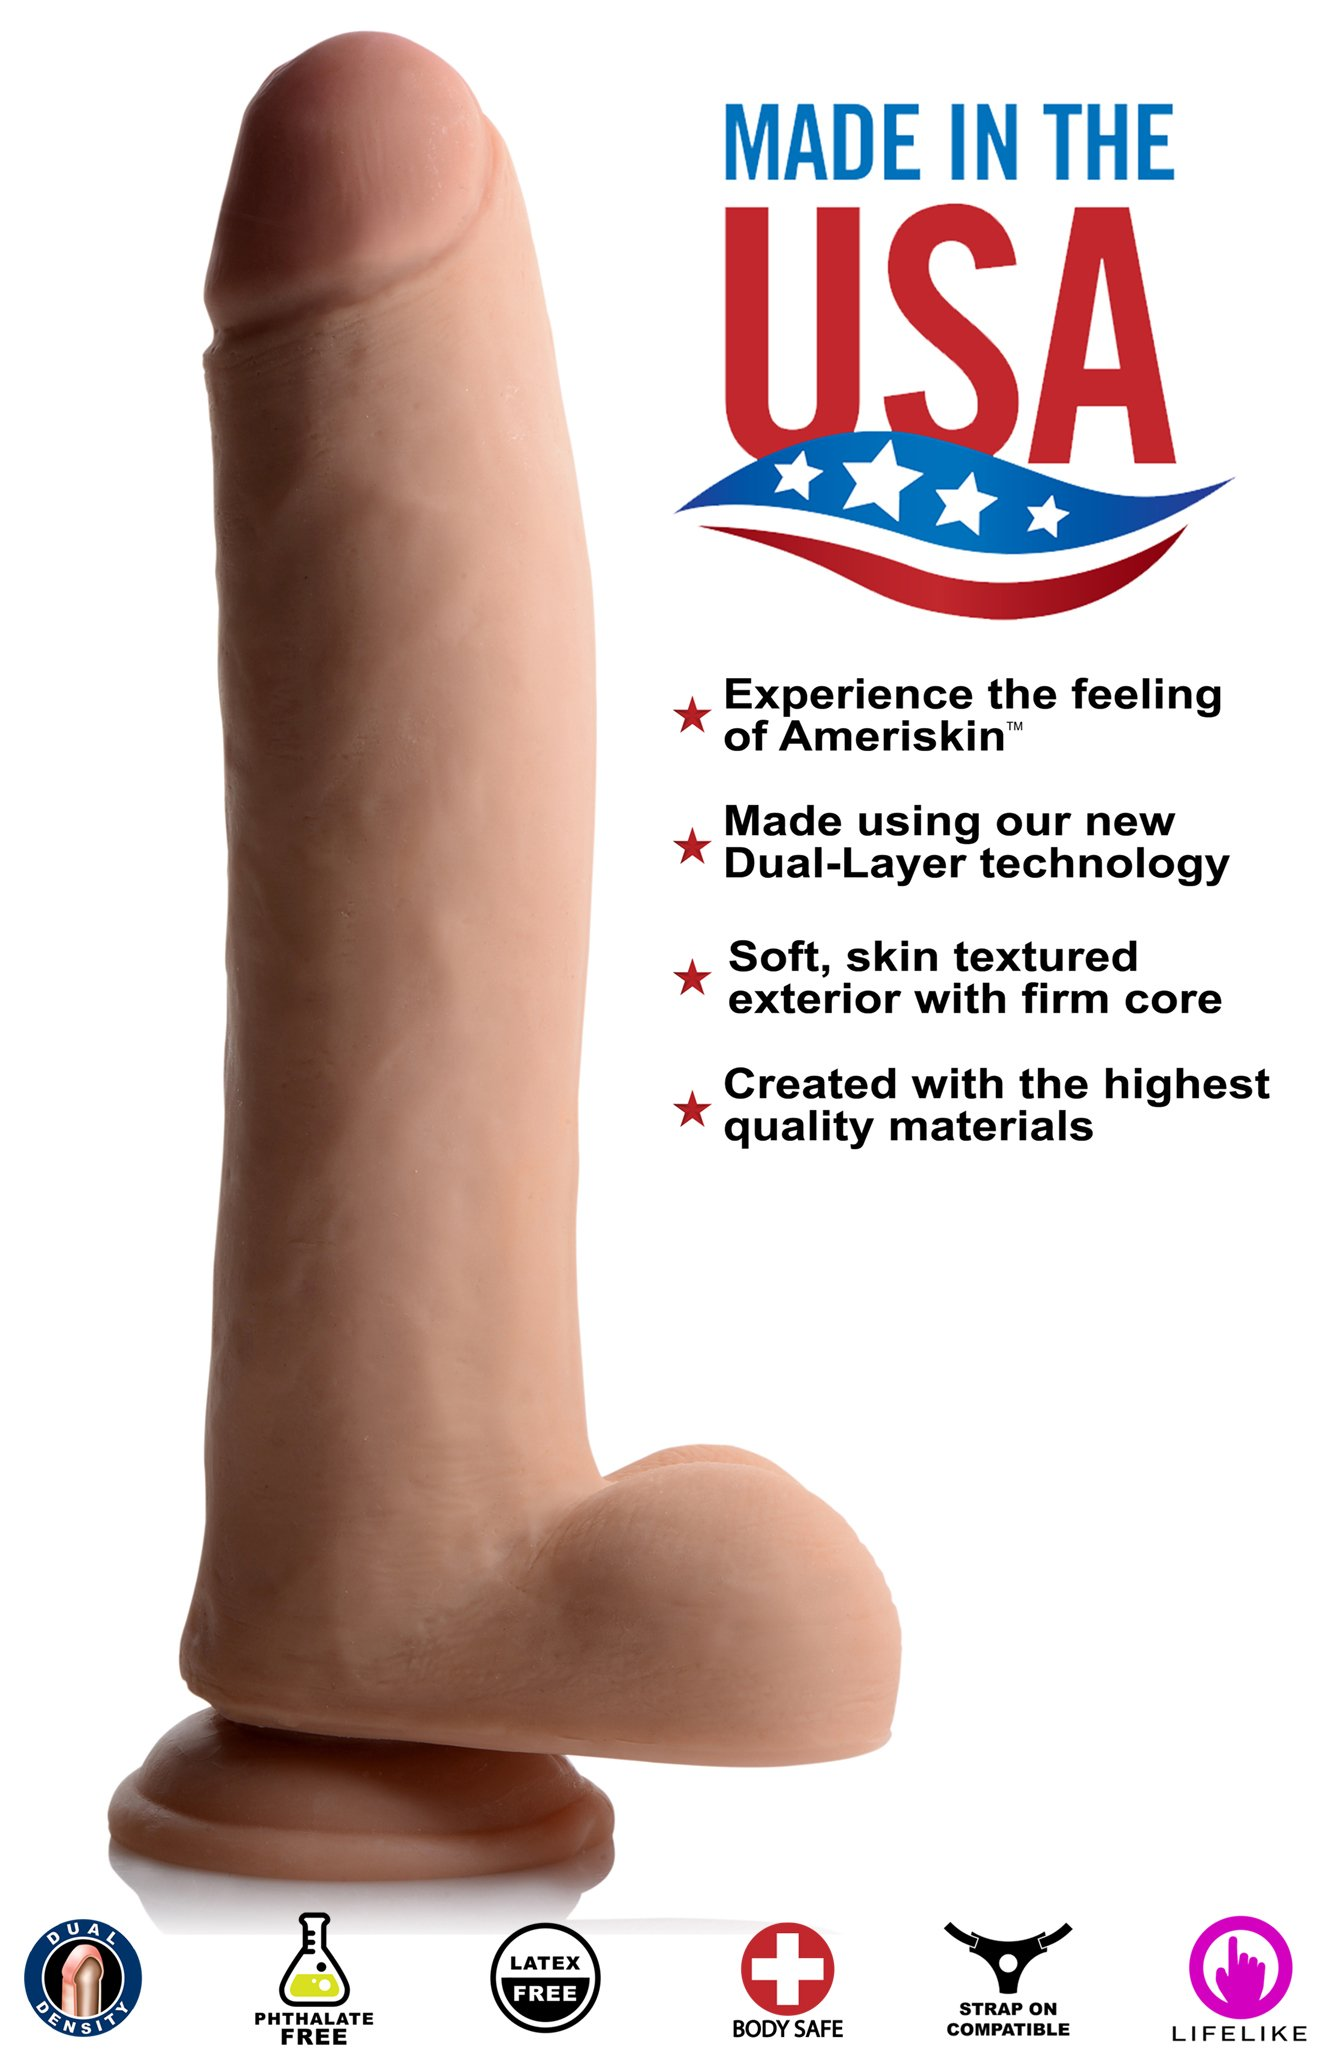 USA Cocks 11 Inch Ultra Real Dual Layer Suction Cup Dildo